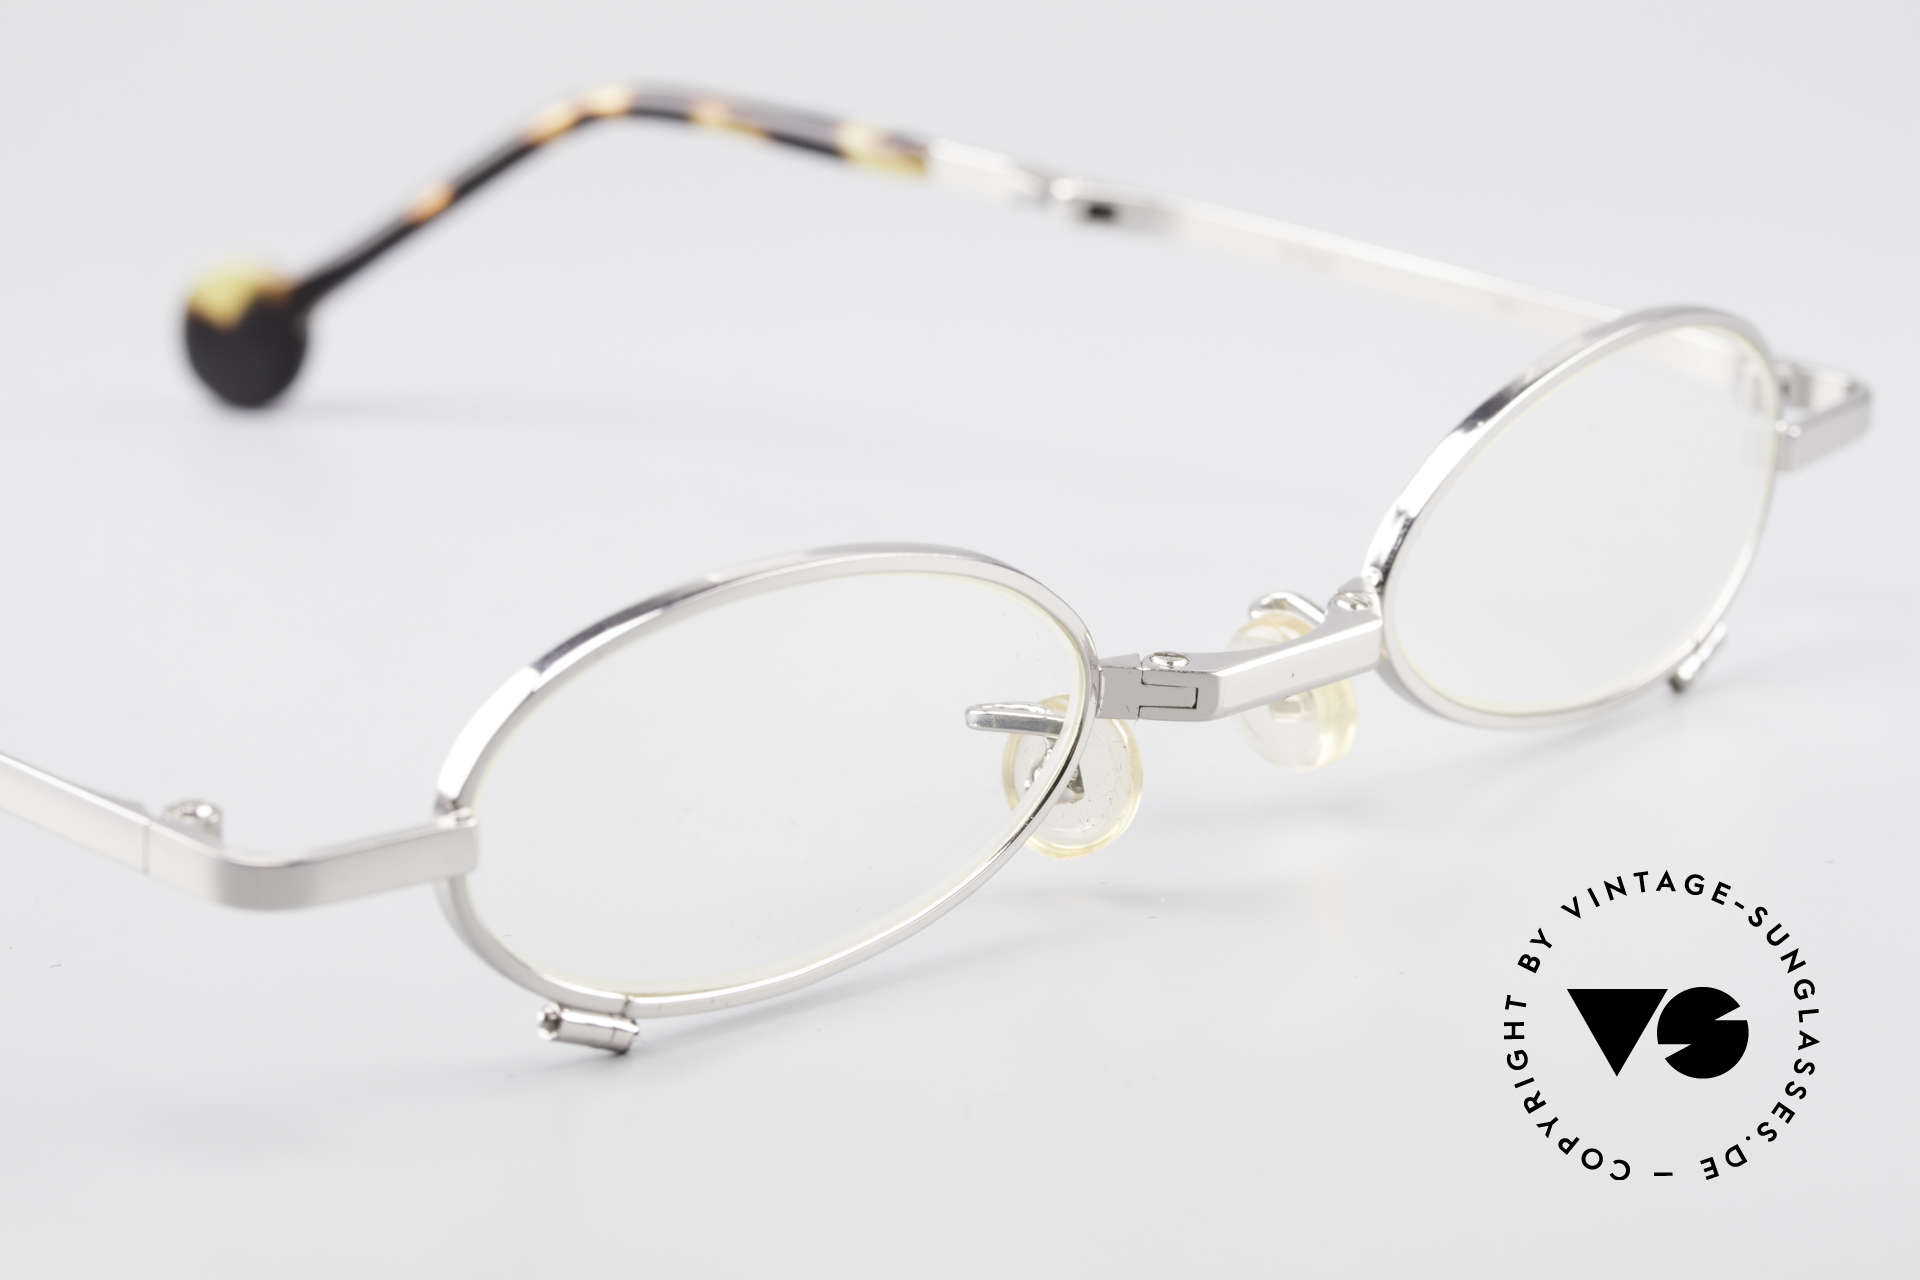 L.A. Eyeworks TIO 405 Vintage Folding Eyeglasses, NO RETRO eyewear, but an old original (Los Angeles, '94), Made for Men and Women